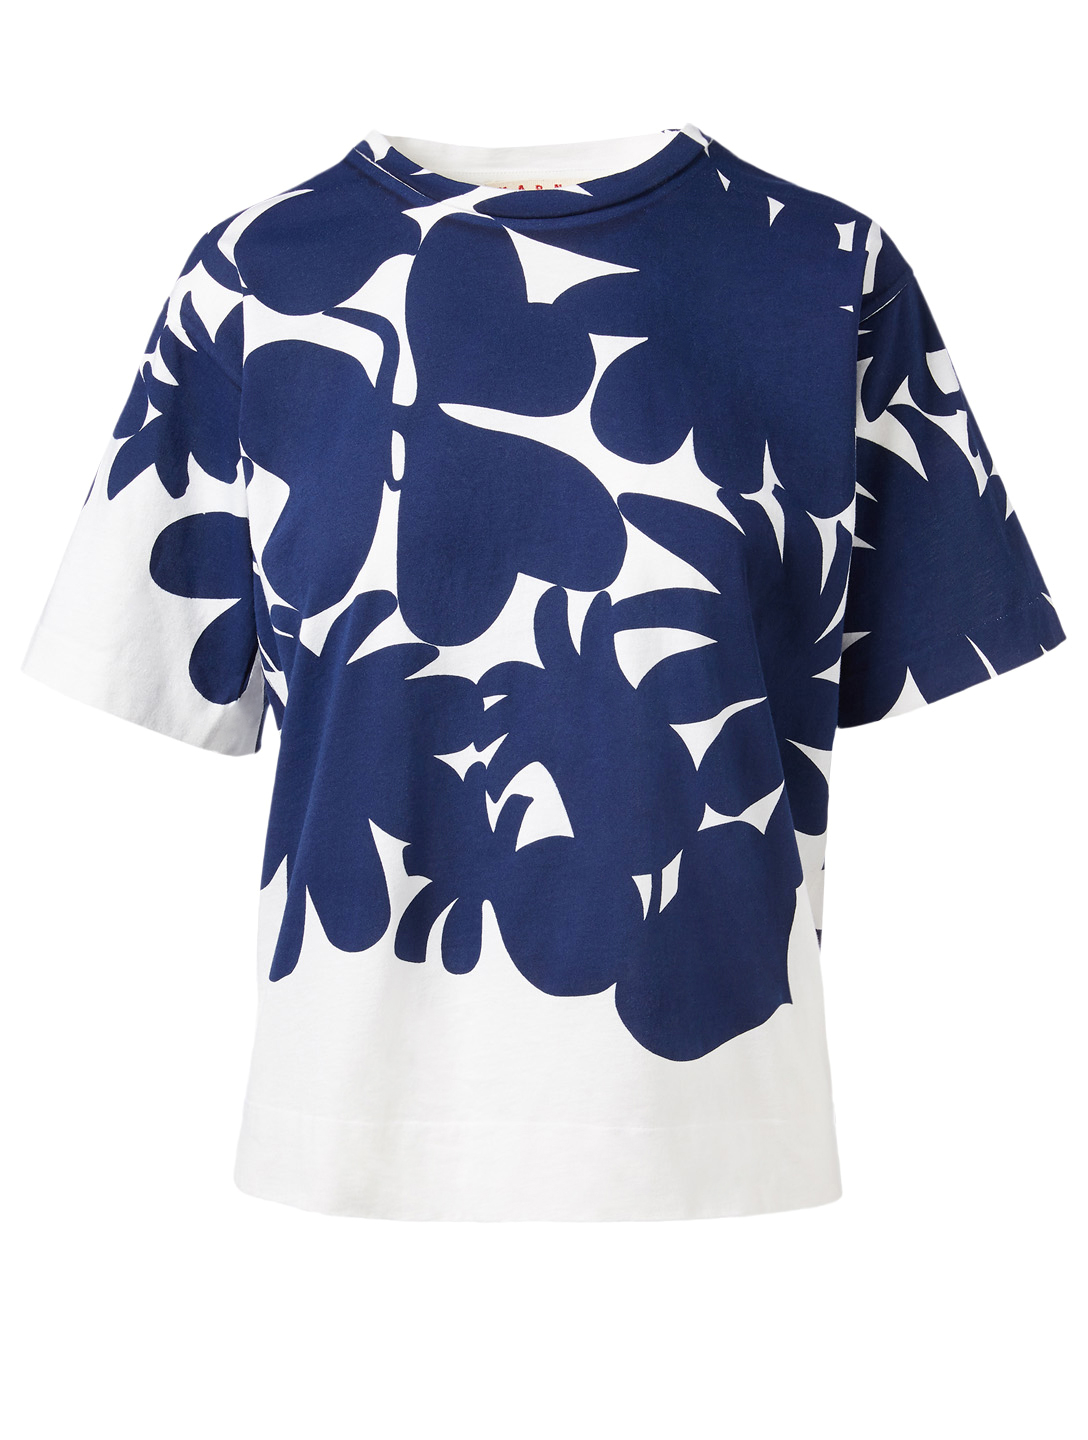 268bb044e79 MARNI T-Shirt In Floral And Stripe Print Women s Blue ...